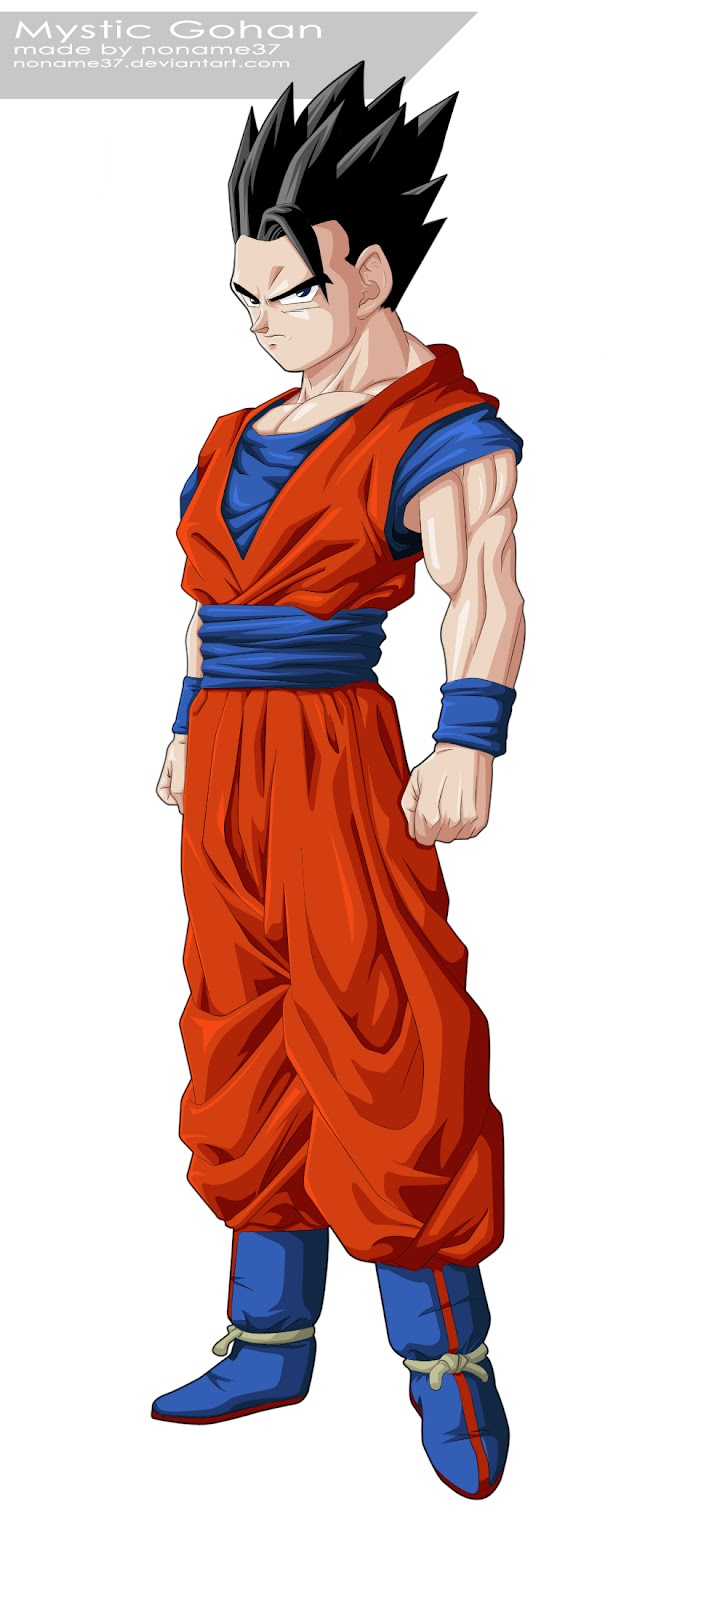 related keywords amp suggestions for mystic gohan